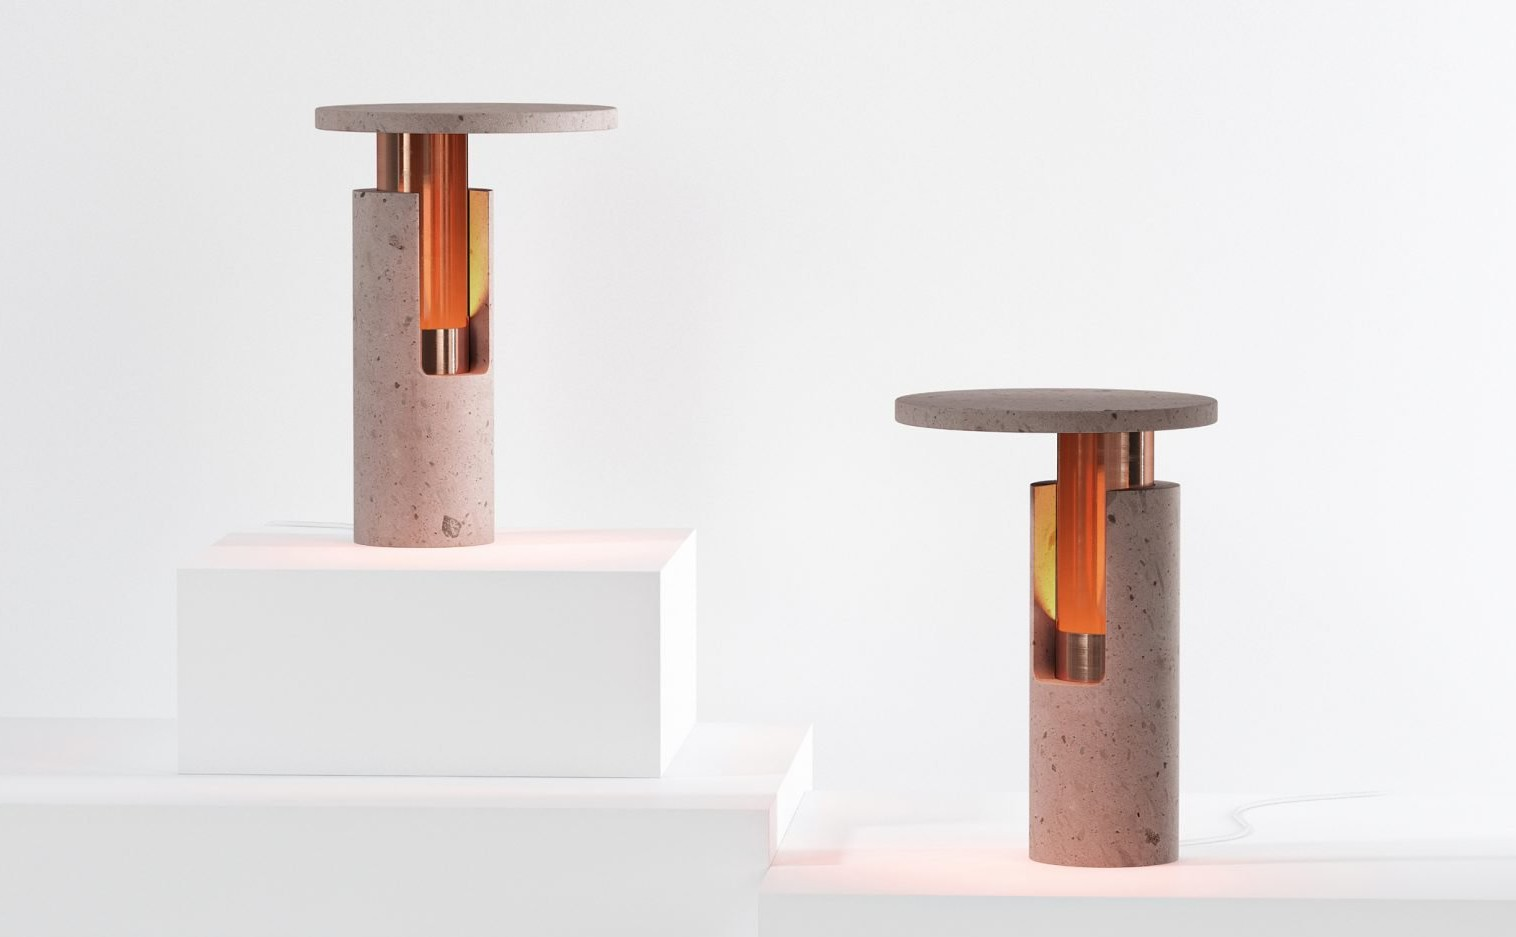 ambra-wall-table-davidpompa-design-week-mexico-cantera-rock_dezeen_hero-1704x958